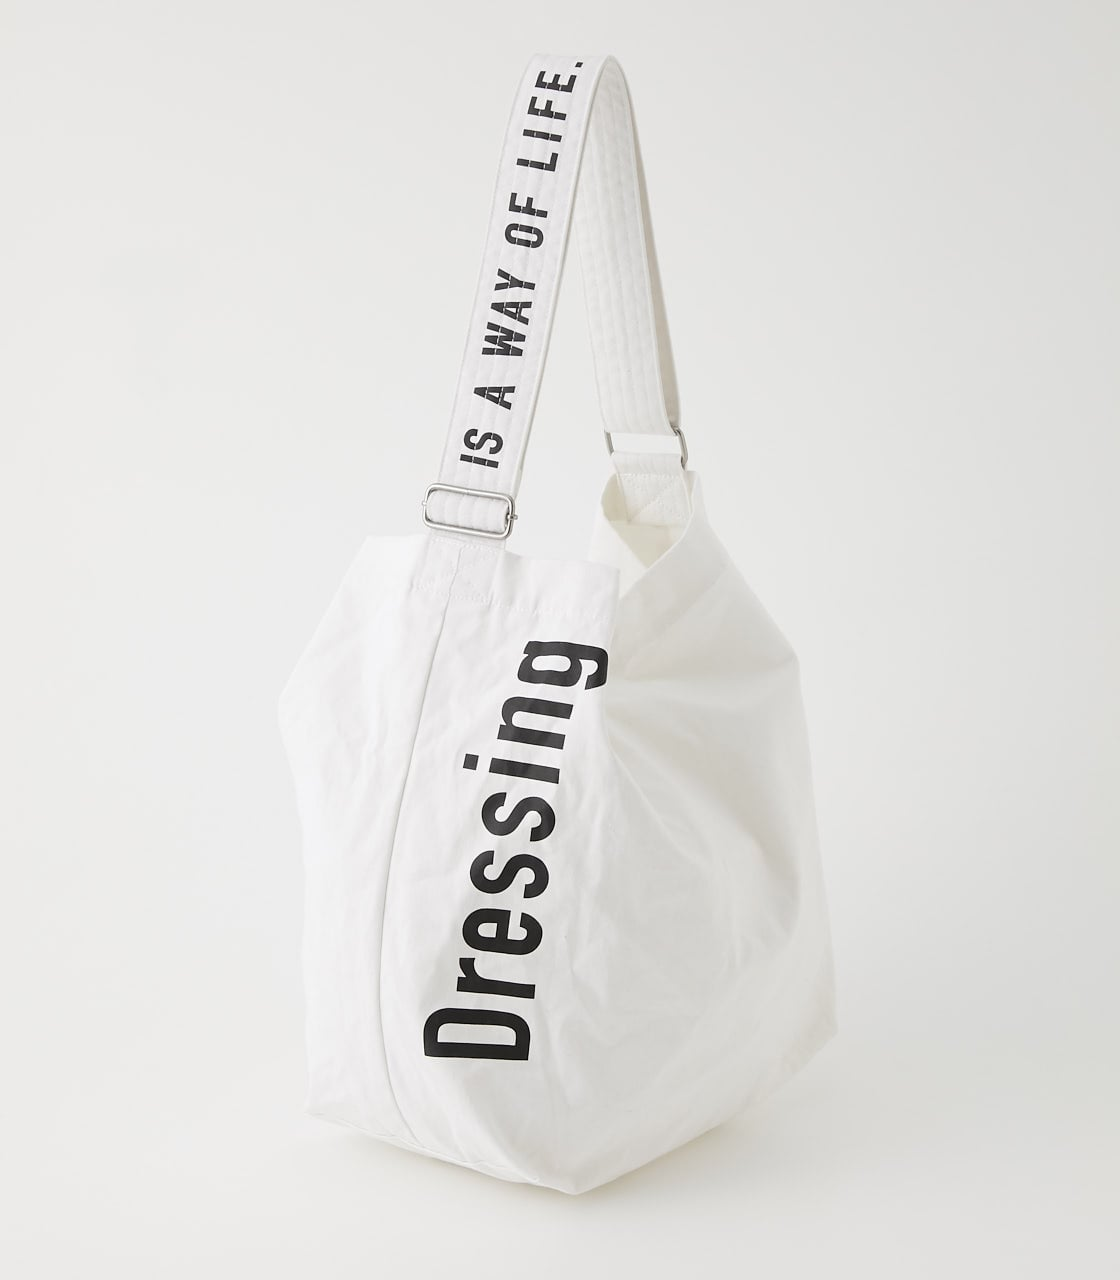 【AZUL BY MOUSSY】DRESSING TOTE BAG 詳細画像 WHT 1